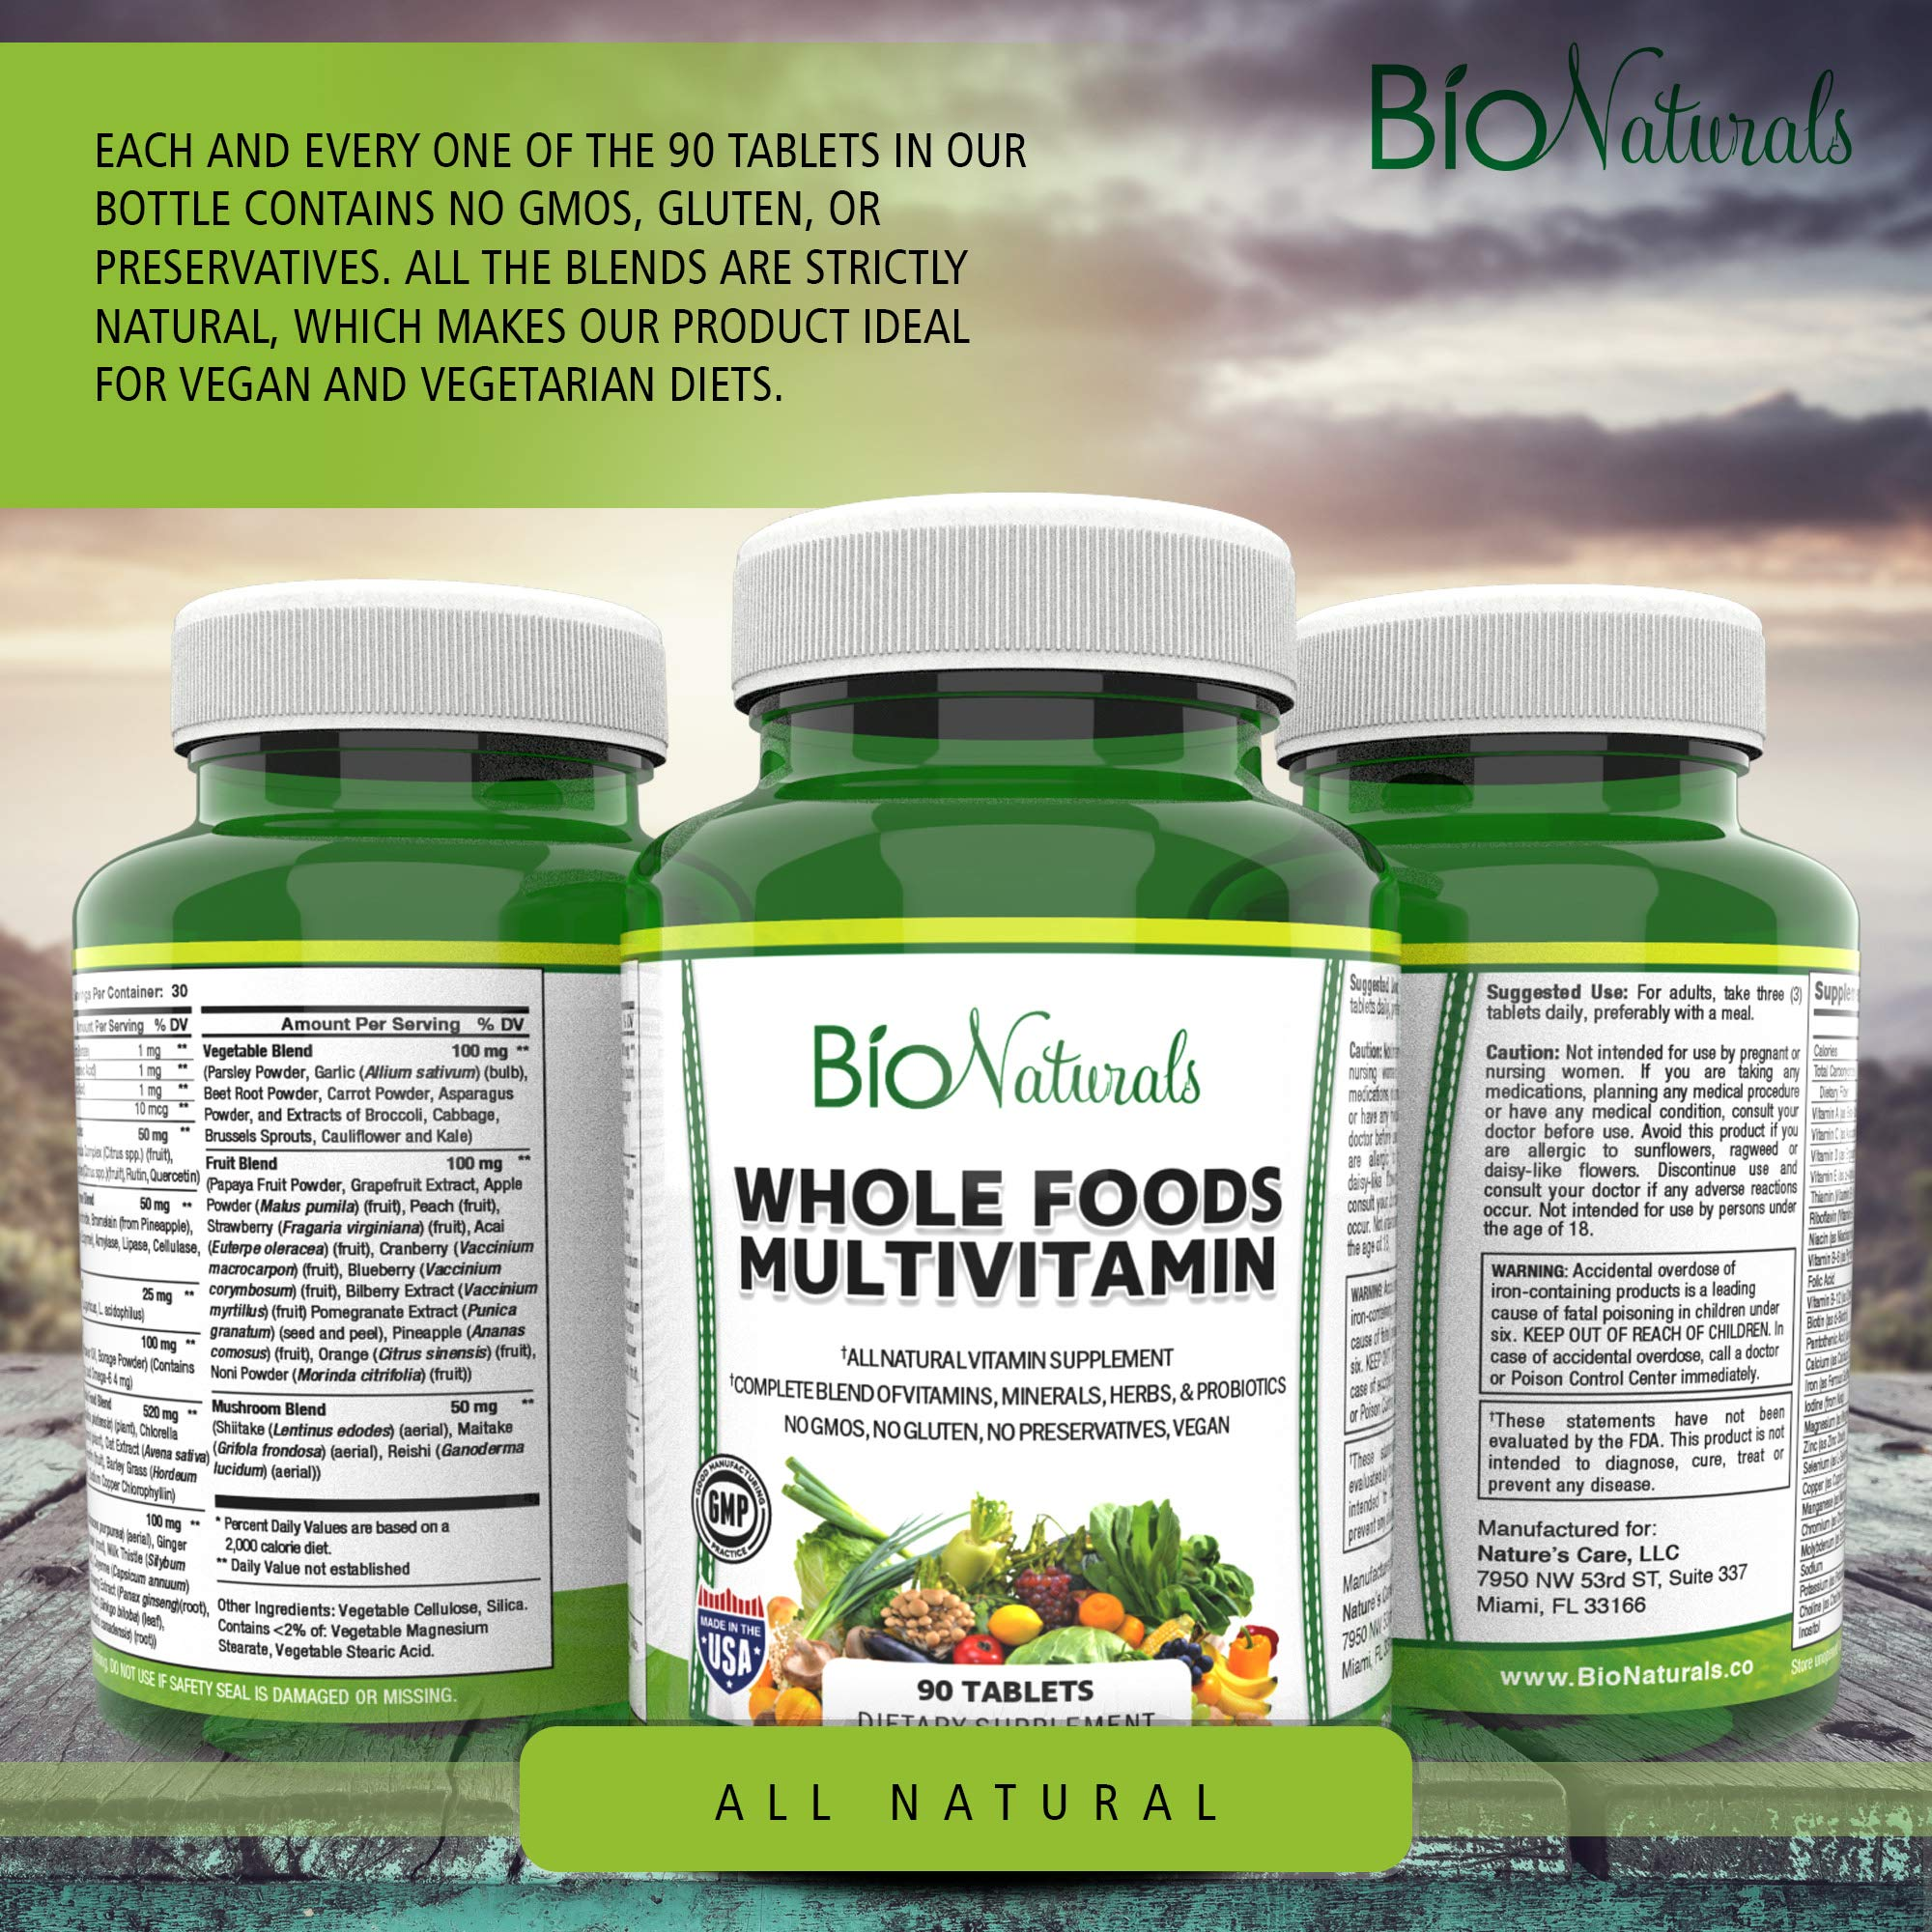 Bio Naturals Whole Foods Multivitamin For Men & Women with 100+ Nutrients - Vitamins A B C D E, Minerals, Herbs, Omega 3, Probiotics, Organic Extracts - No GMOs, No Gluten, 100% Vegan - 90 Count